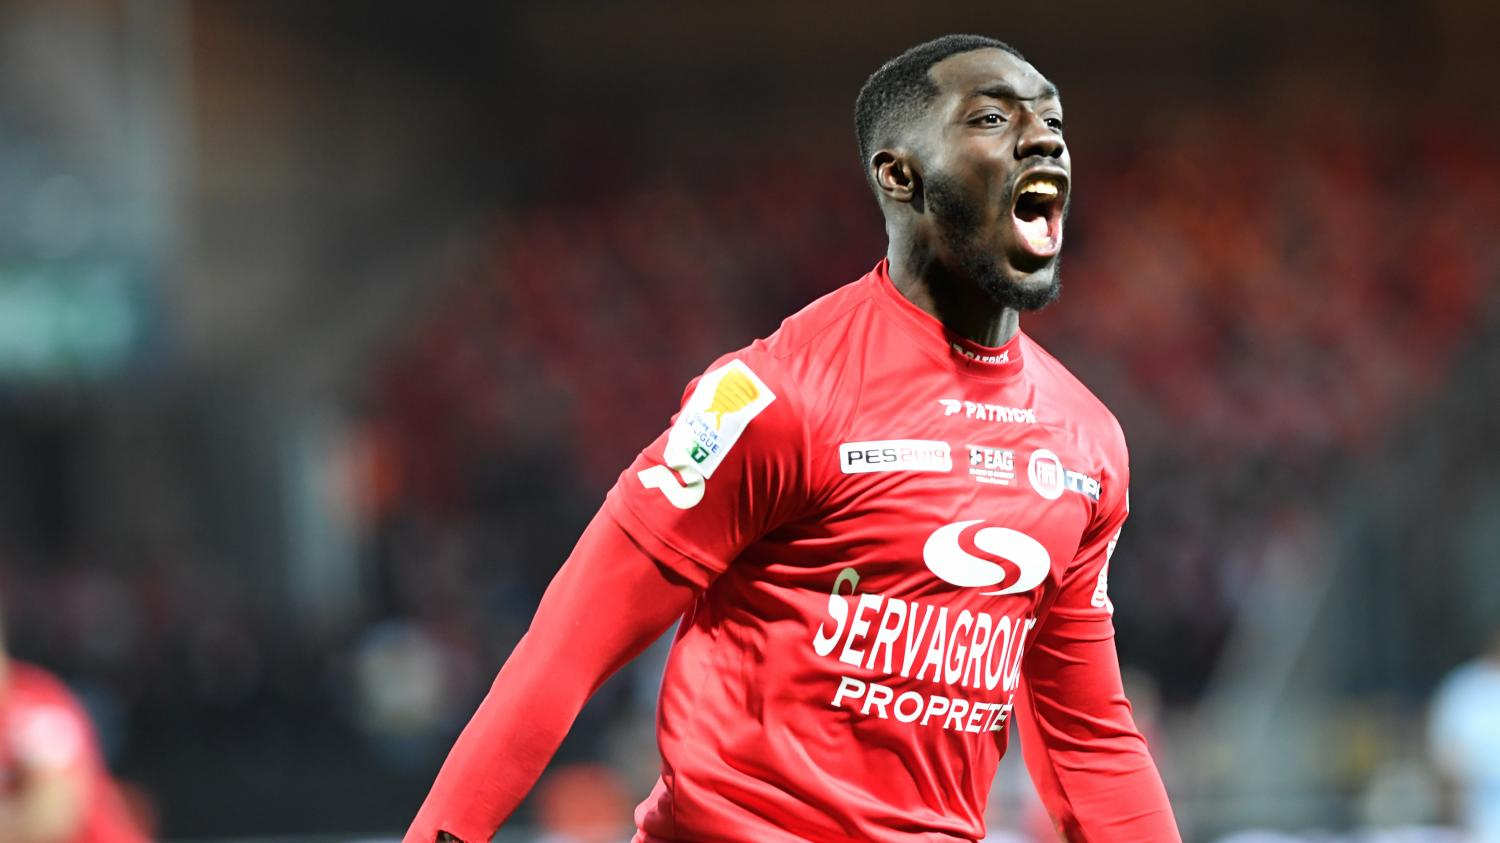 Coupe de la ligue guingamp d croche son billet pour la finale en battant monaco aux tirs au but - Billet finale coupe de france ...